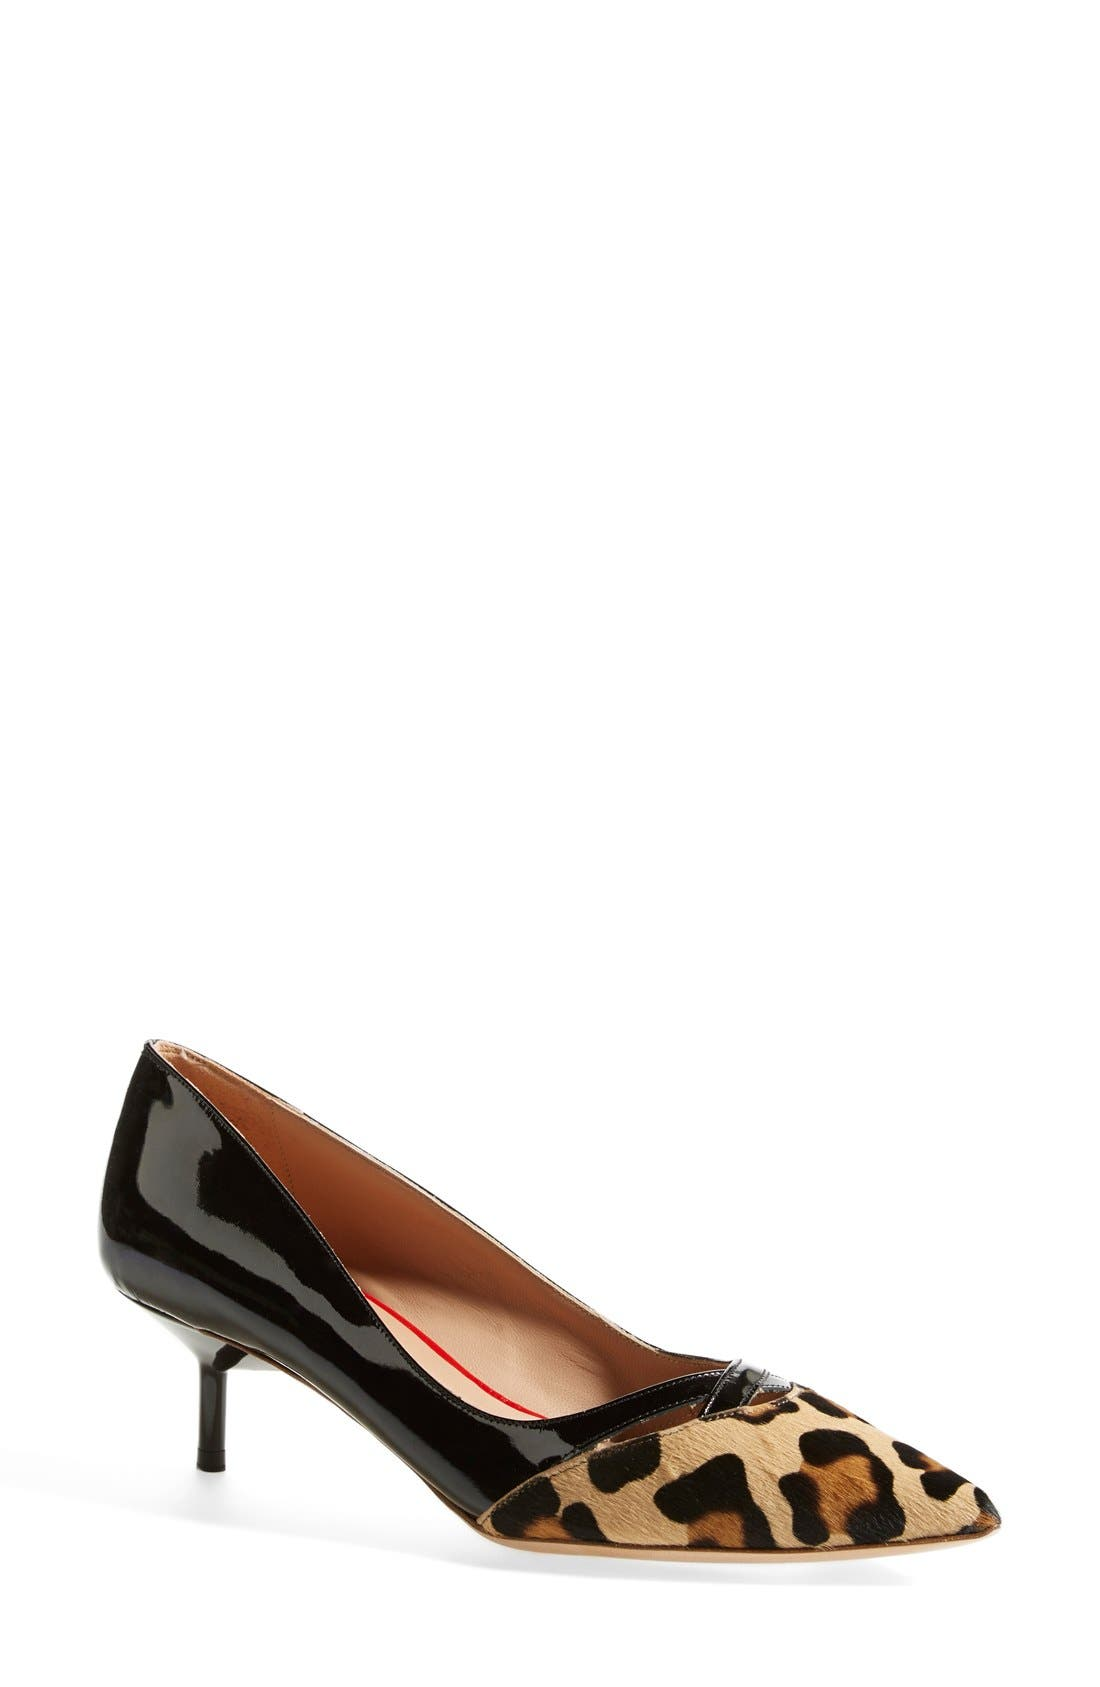 Main Image - Kurt Geiger London 'Cassidy Leo' Kitten Heel Pointy Toe Pump (Women)